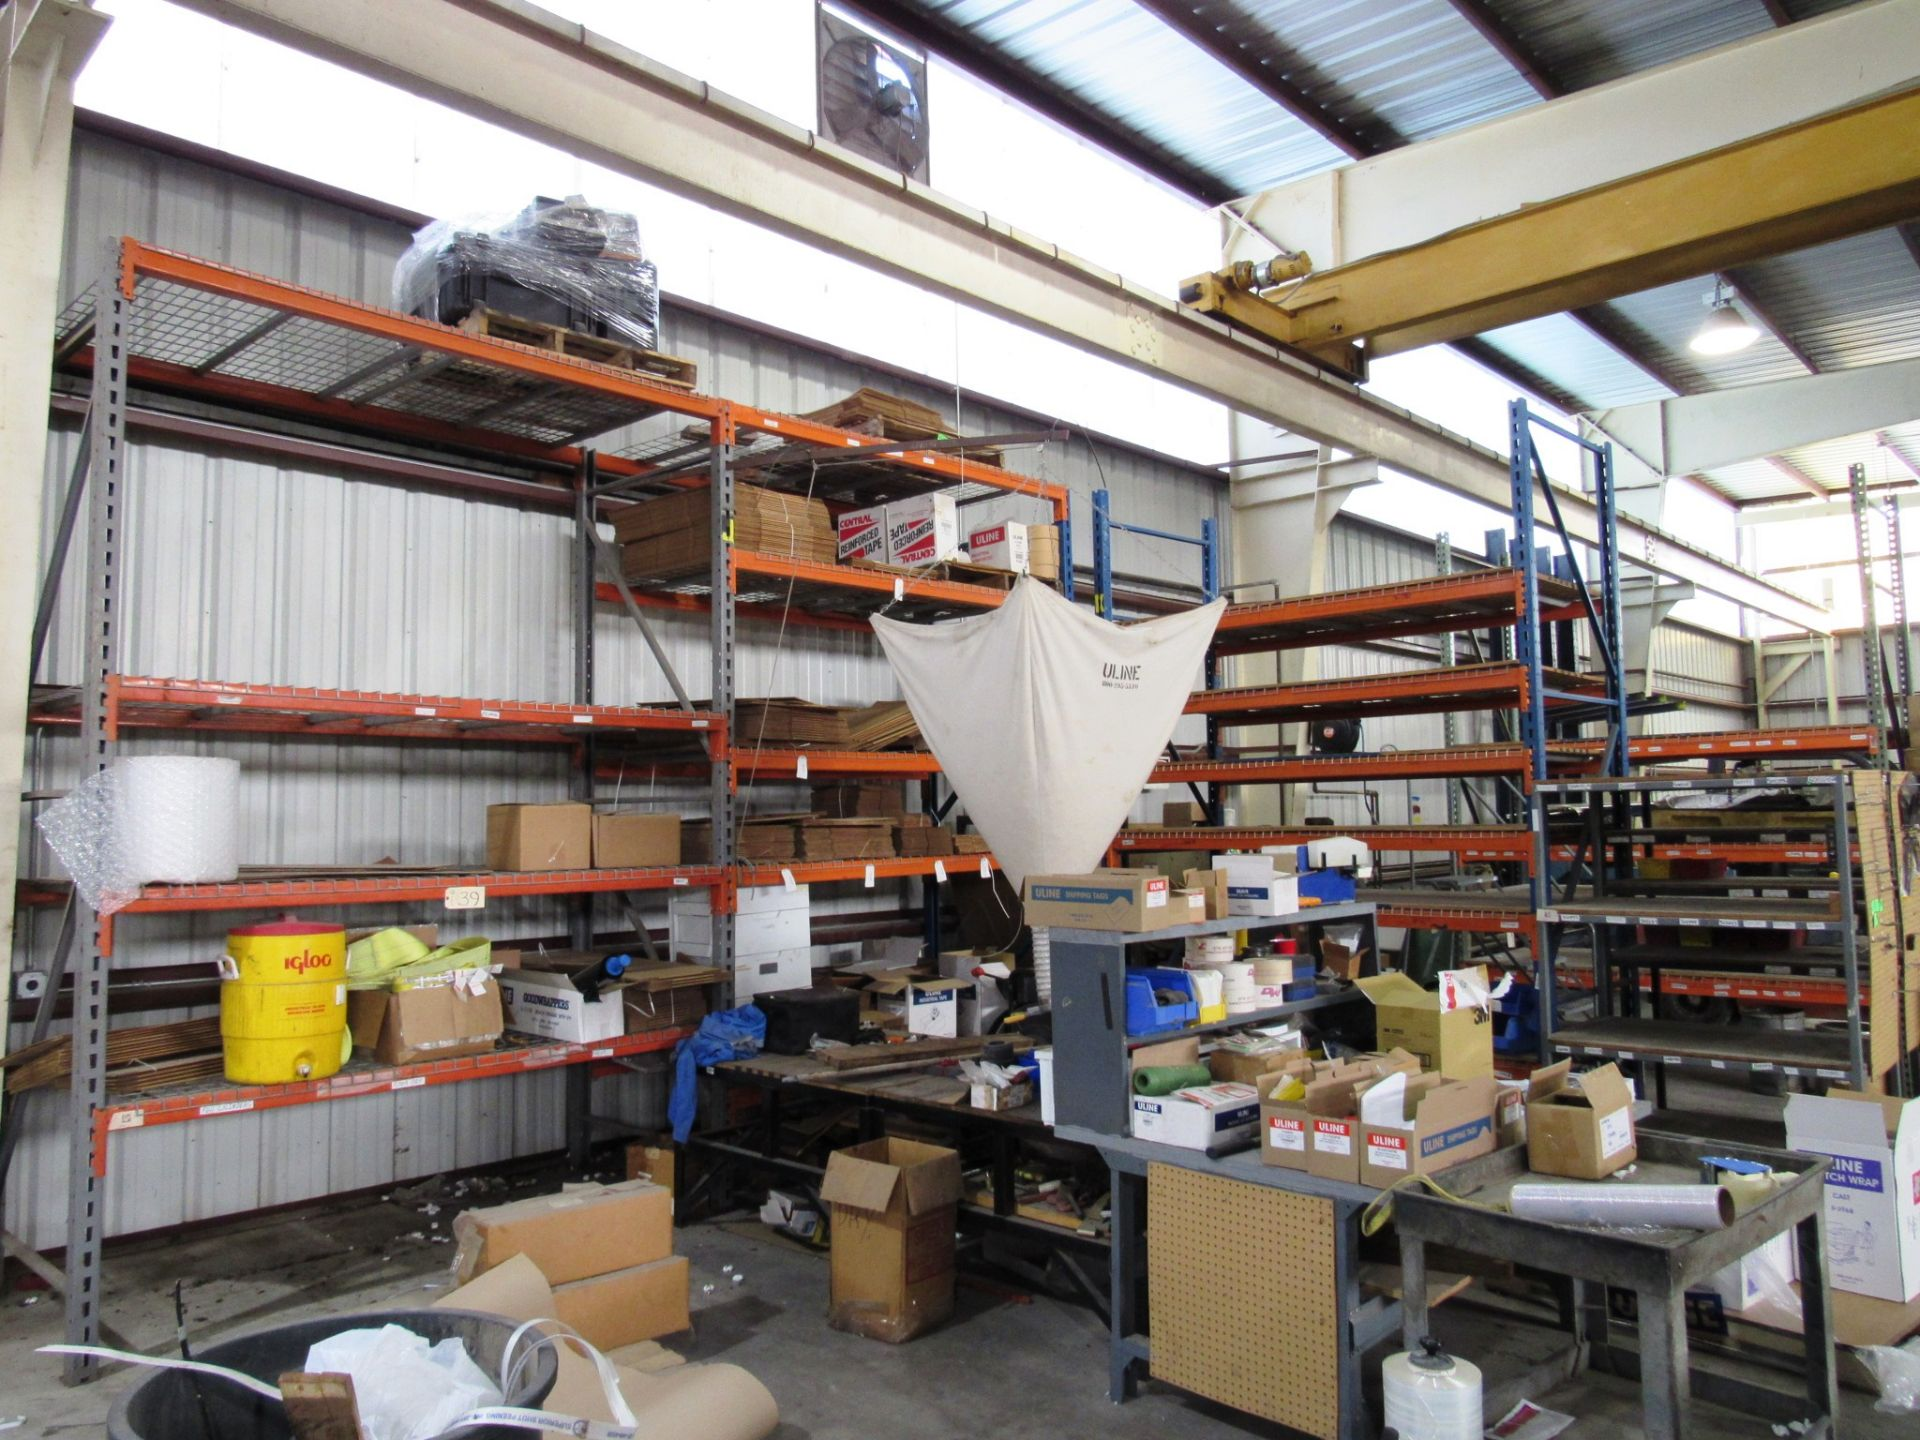 Lot 39 - 4 Sections Pallet Racking (no contents)